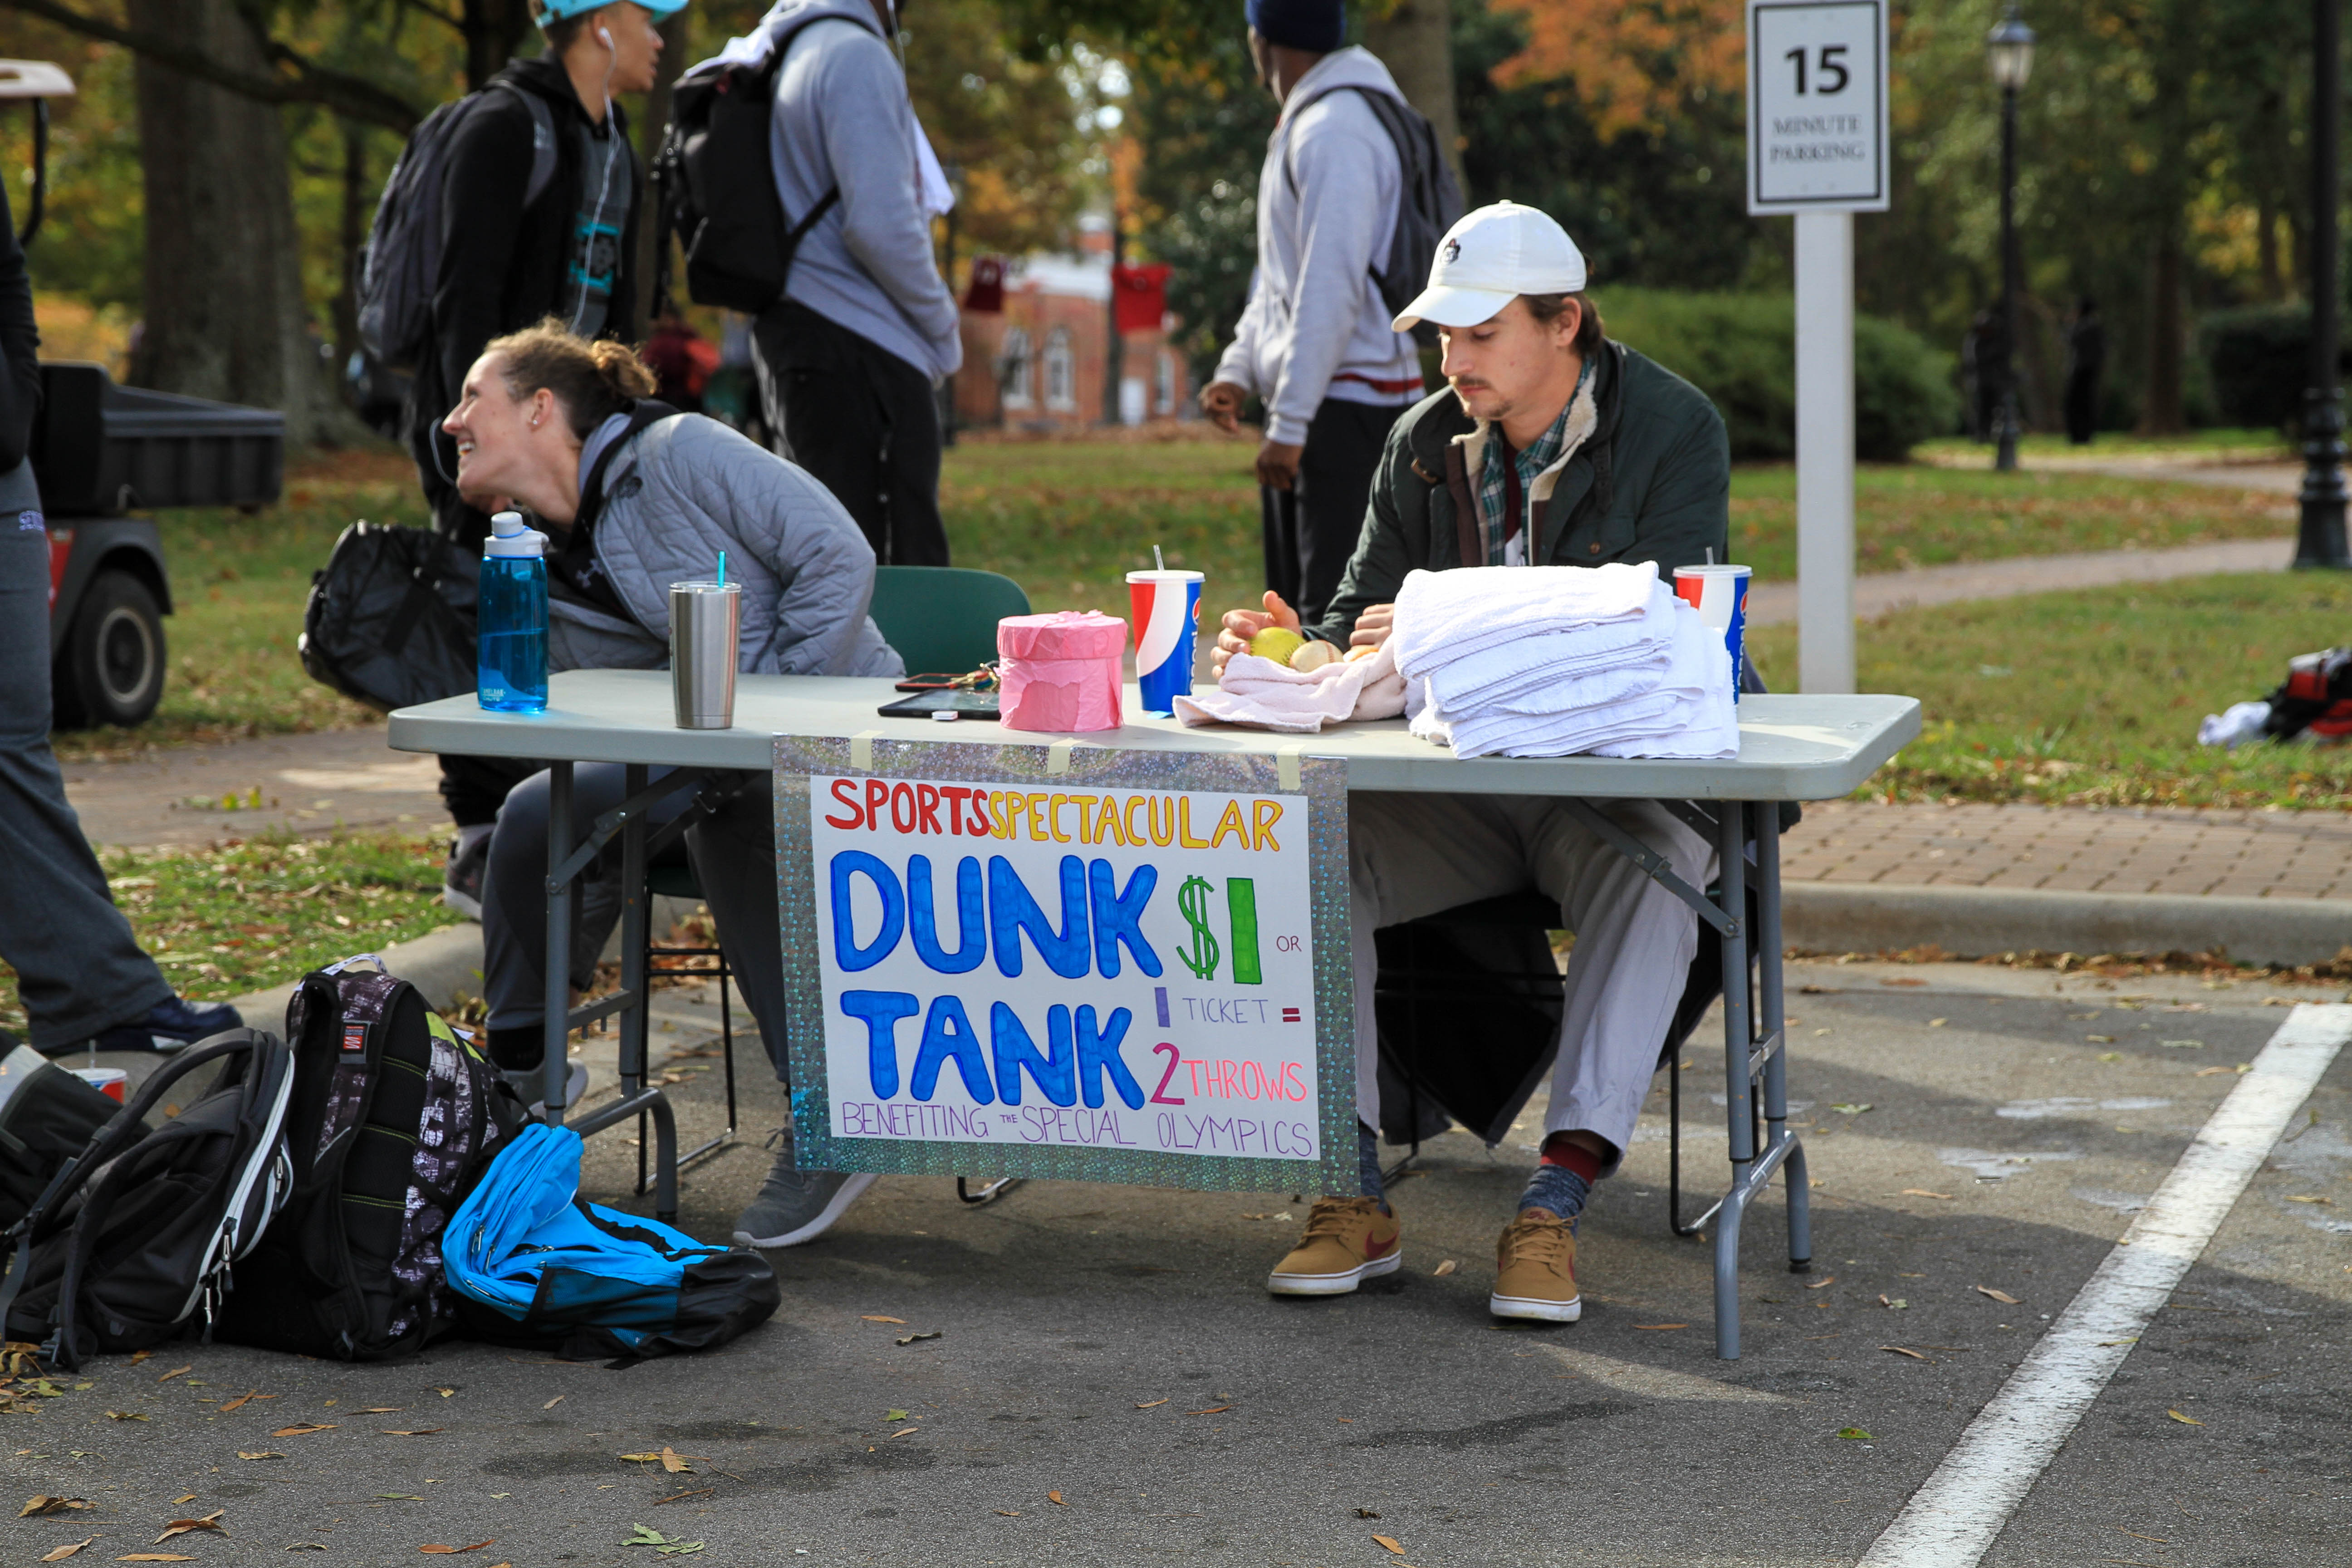 Students take donations for the dunk tank at the fall Sports Spectacular event.